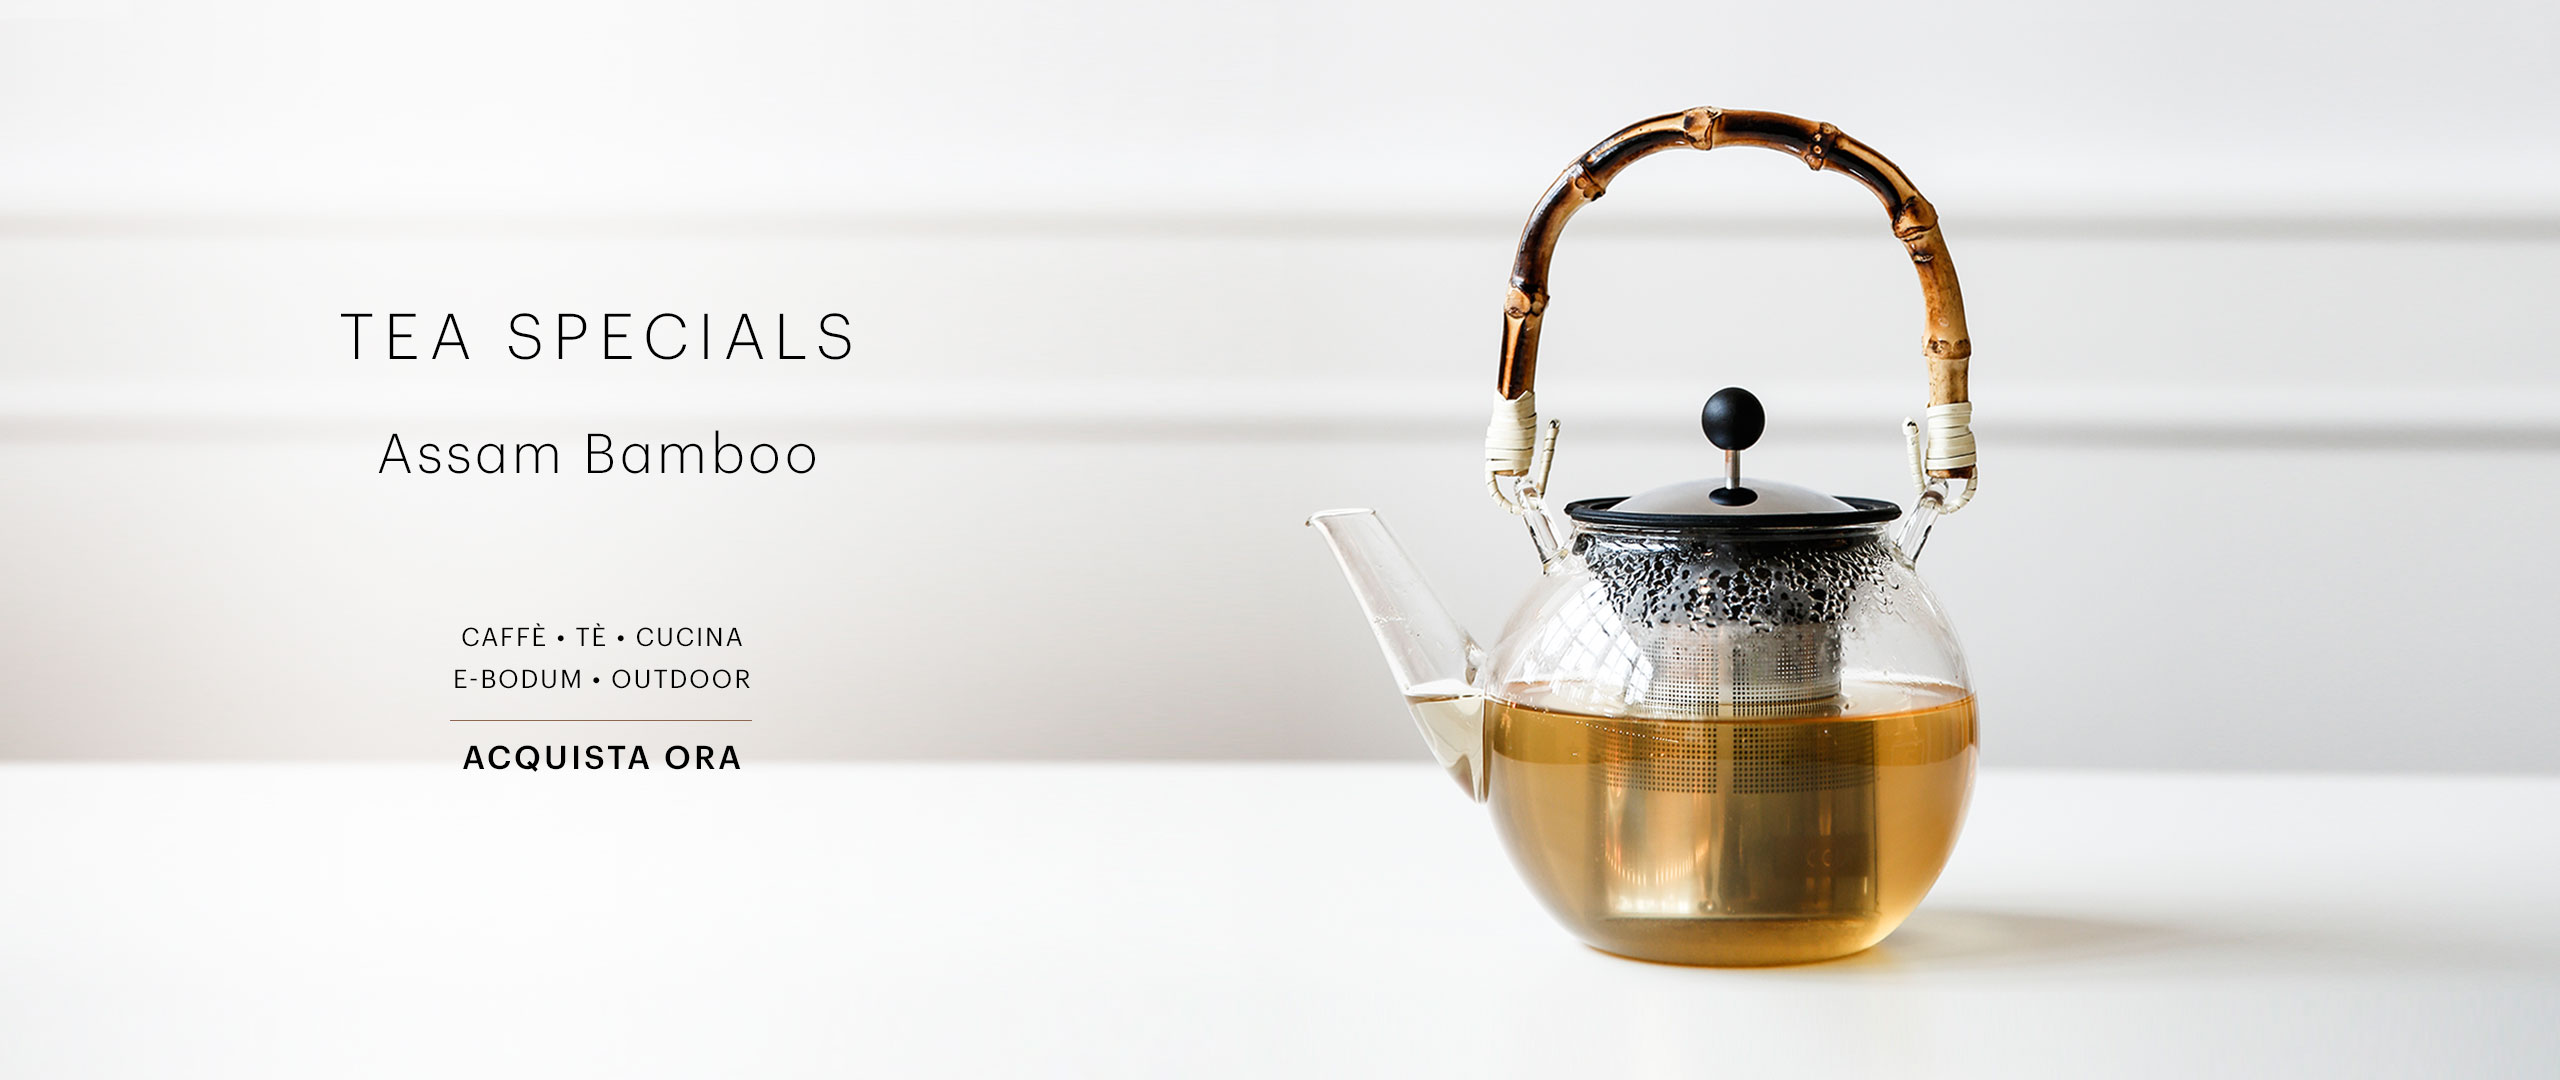 BEU - [IT] - Tea Specials